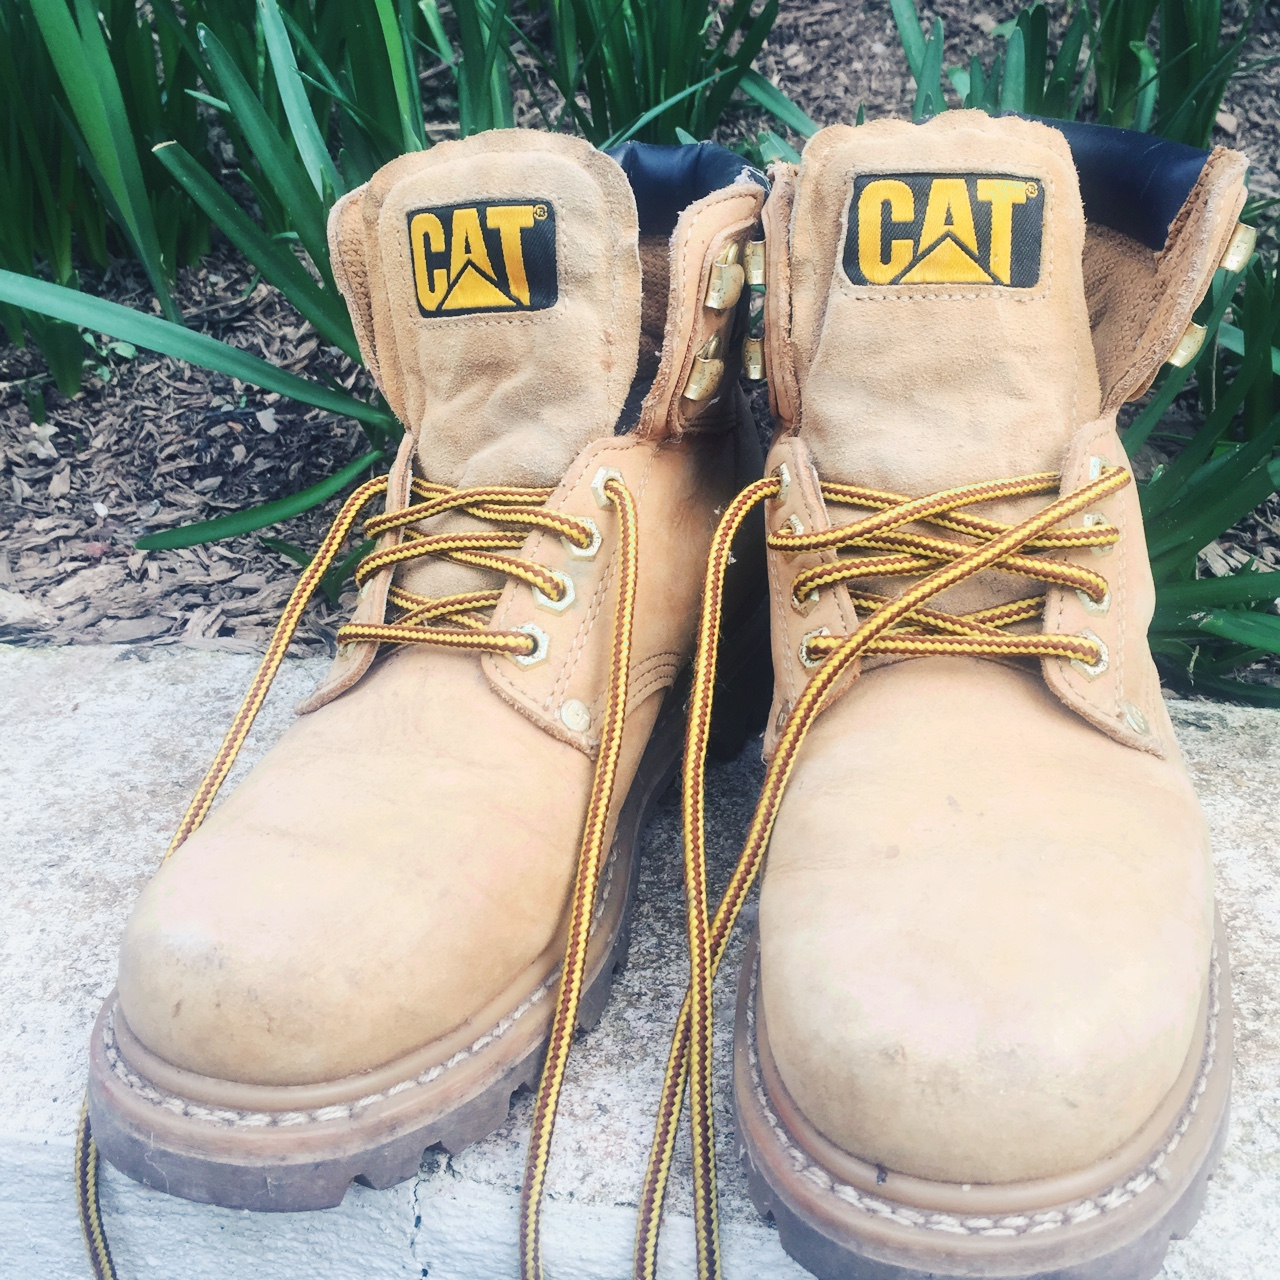 Vintage Shoes: Timberland Caterpillar